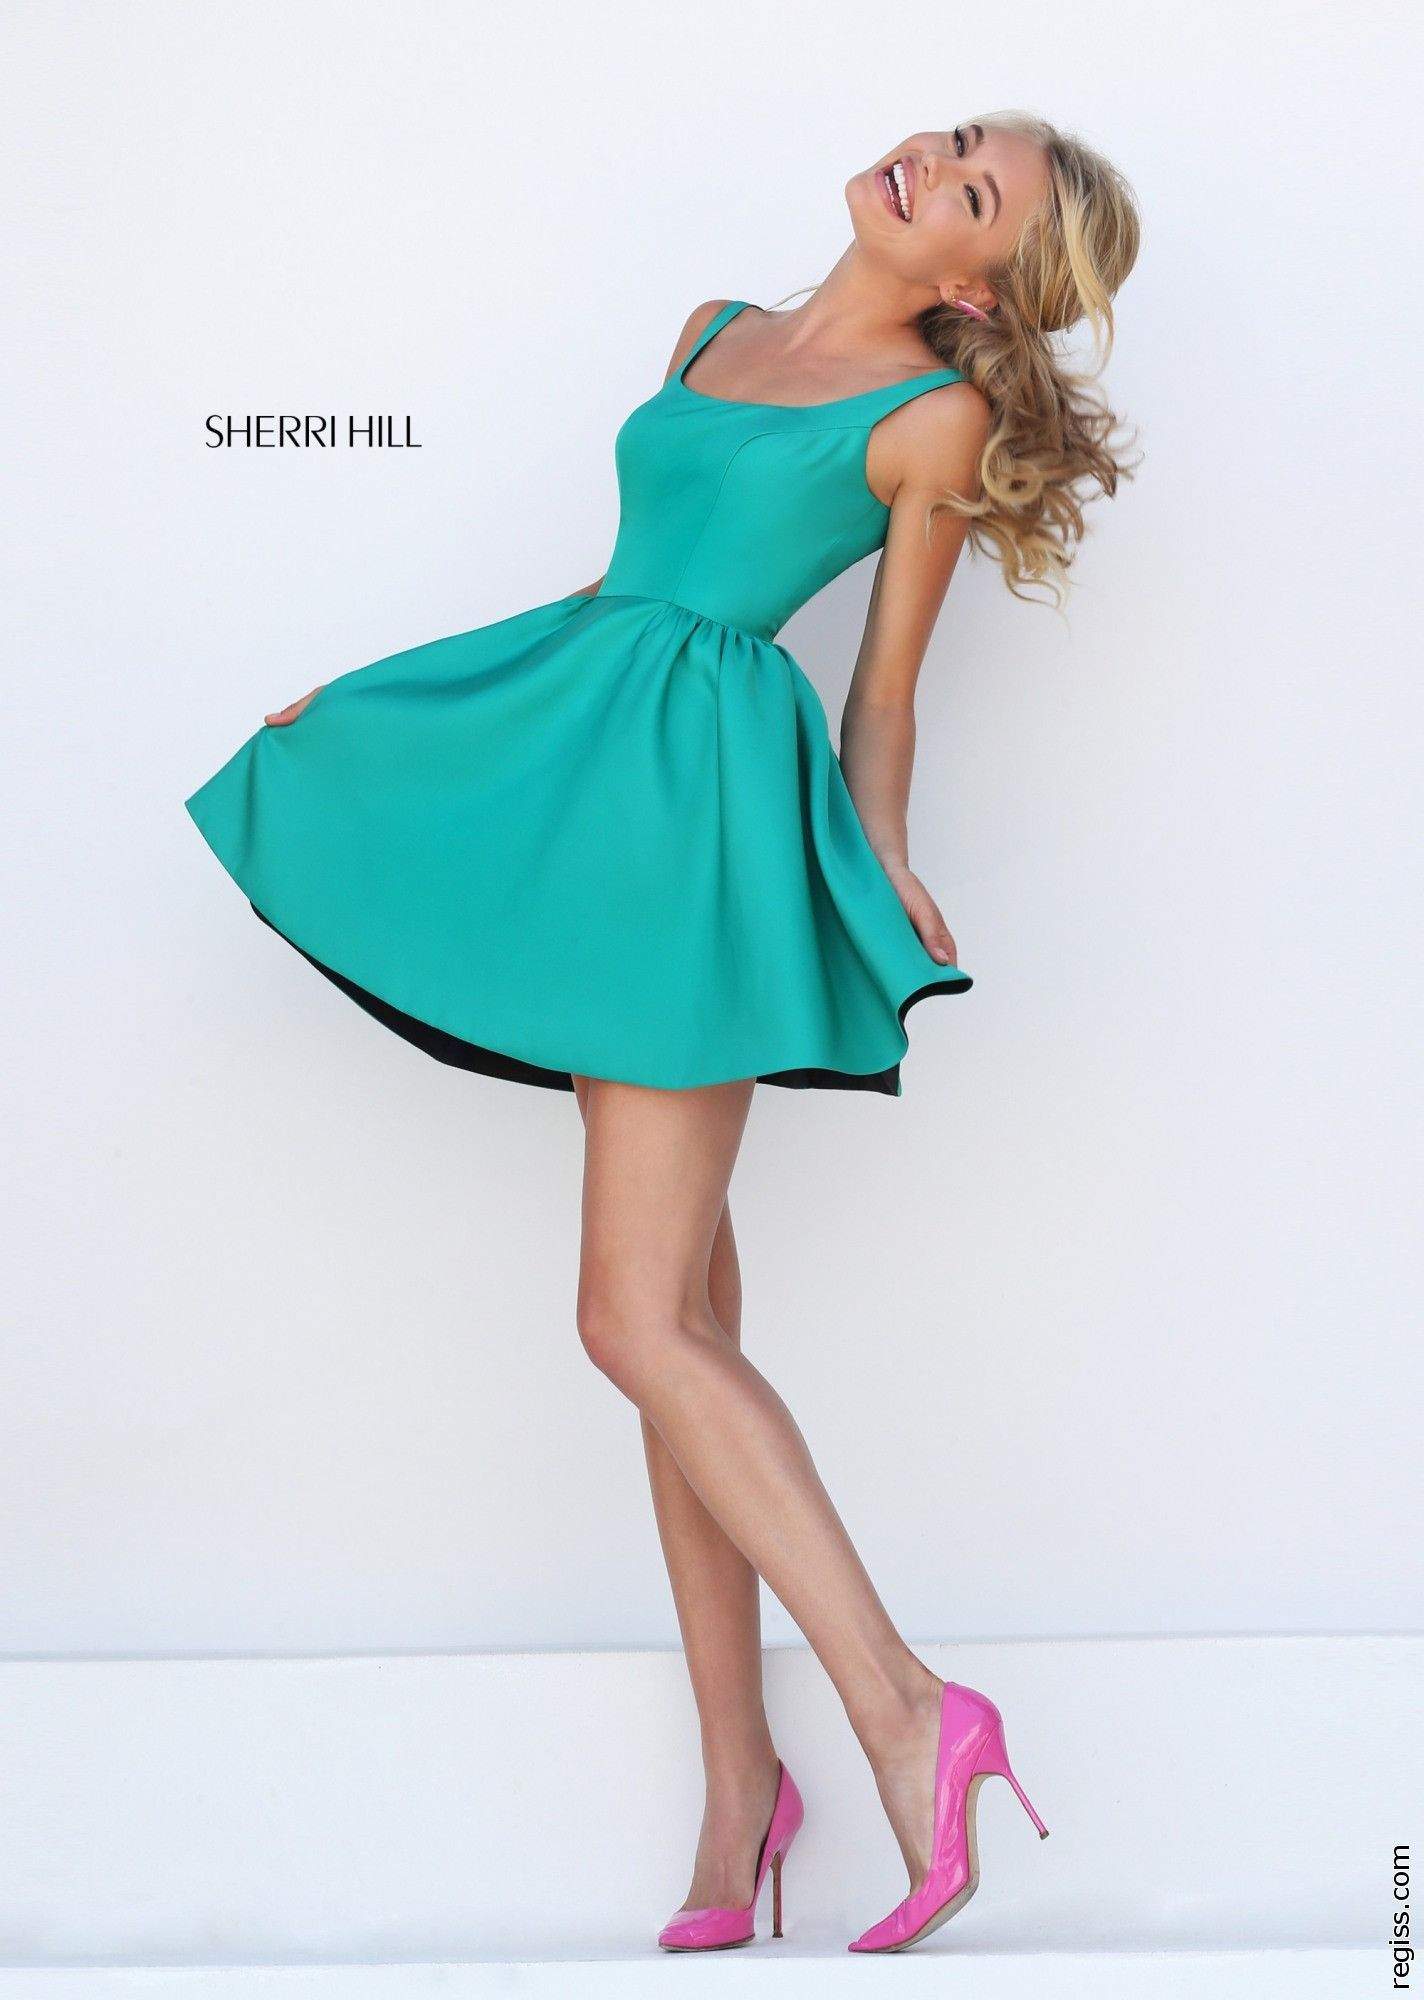 Sherri Hill - 50330 | °°°Clothes°°° | Pinterest | Western girl ...